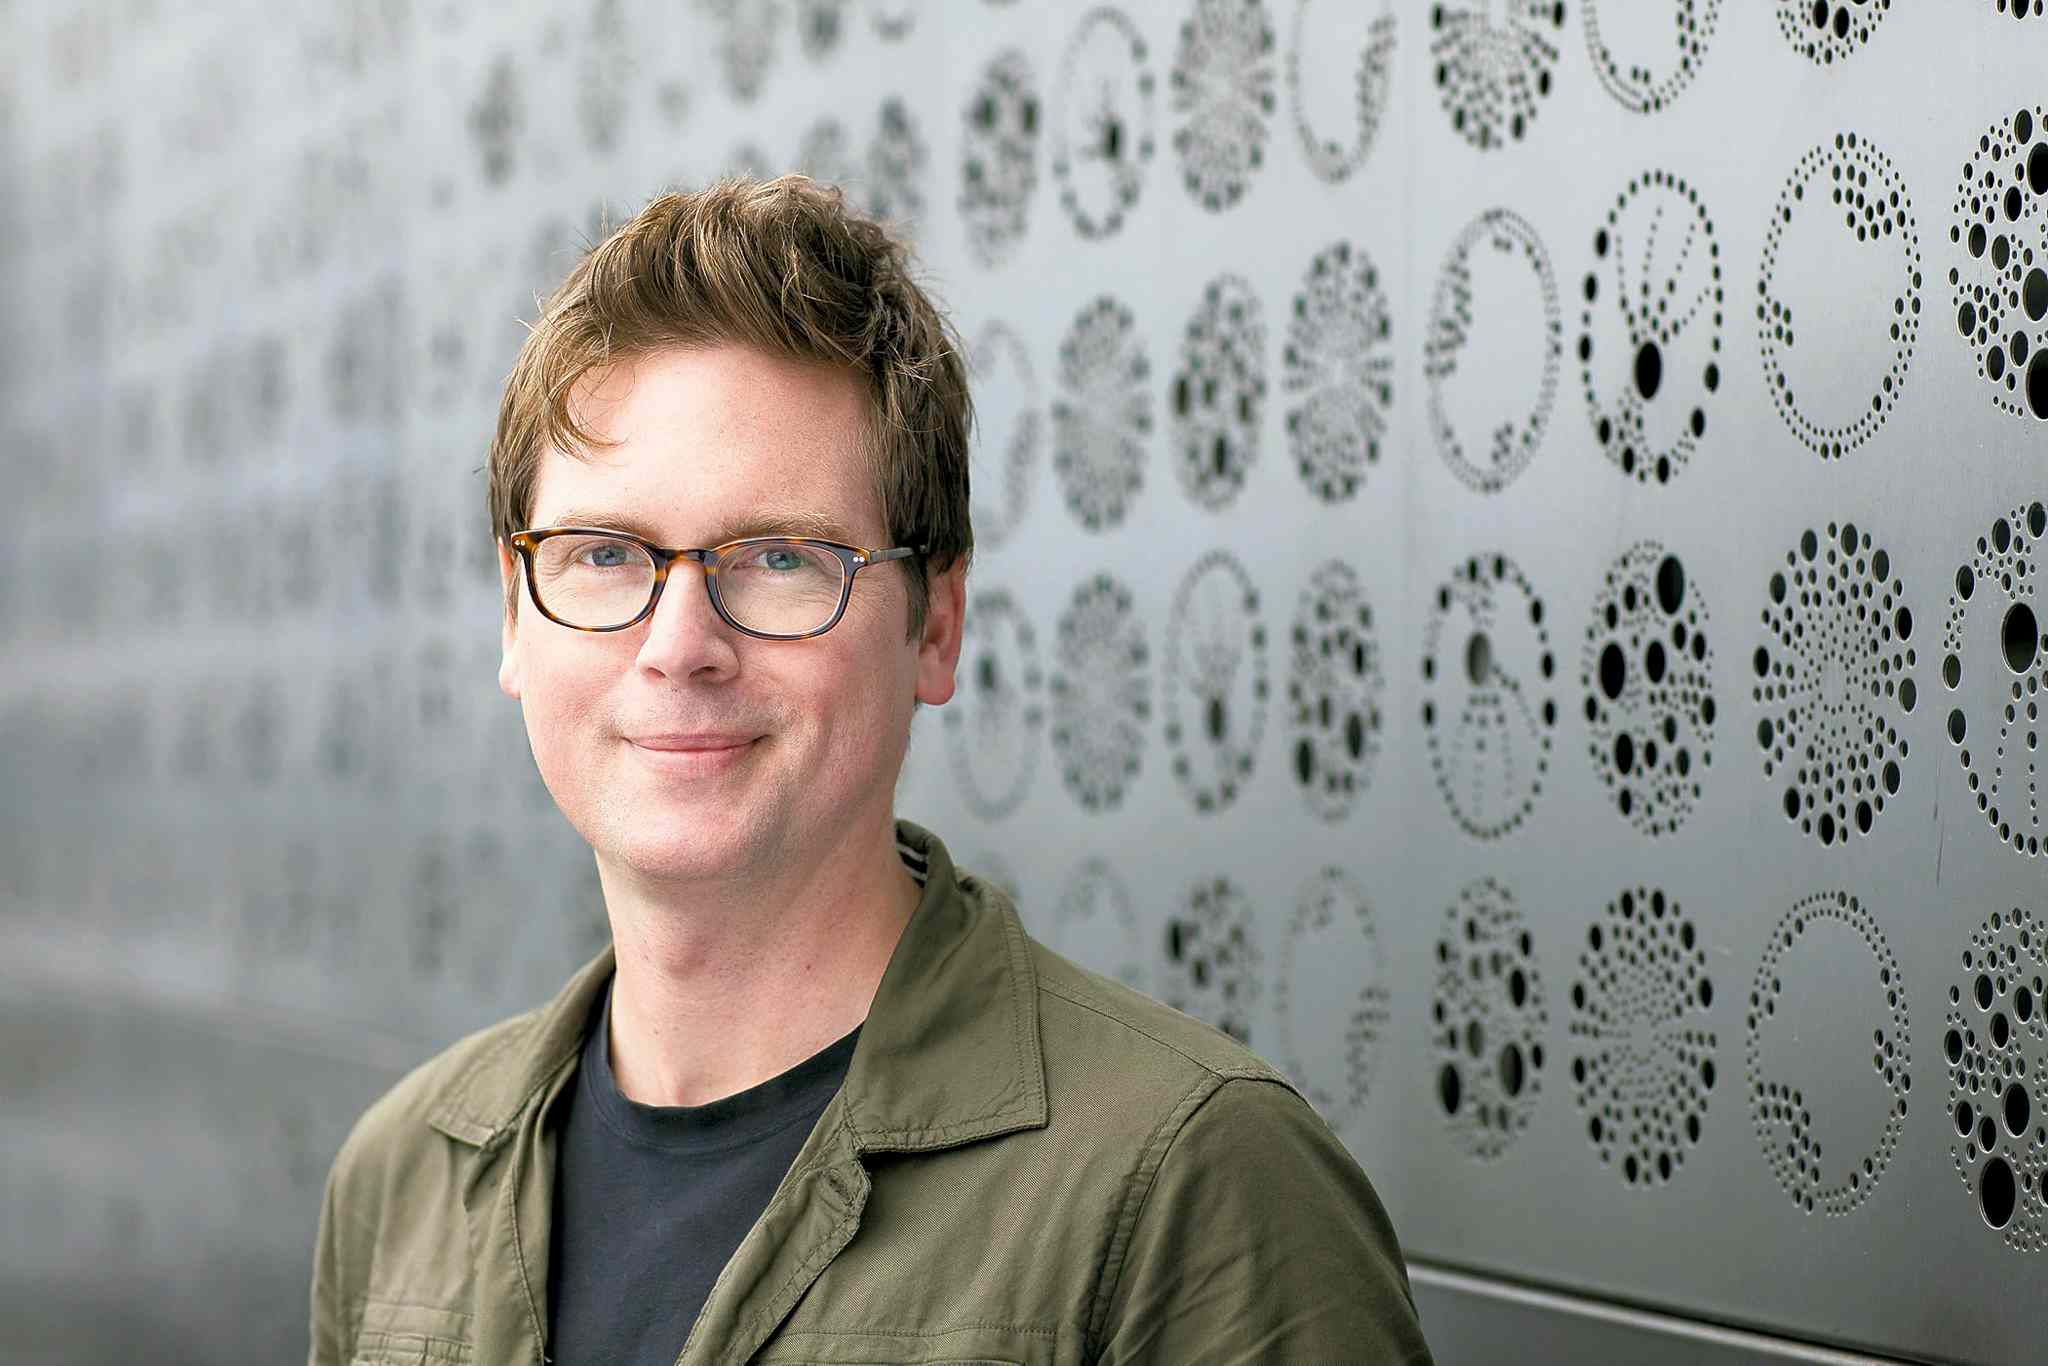 Biz Stone's book could use more behind-the-scenes stories and fewer uplifting generalizations.